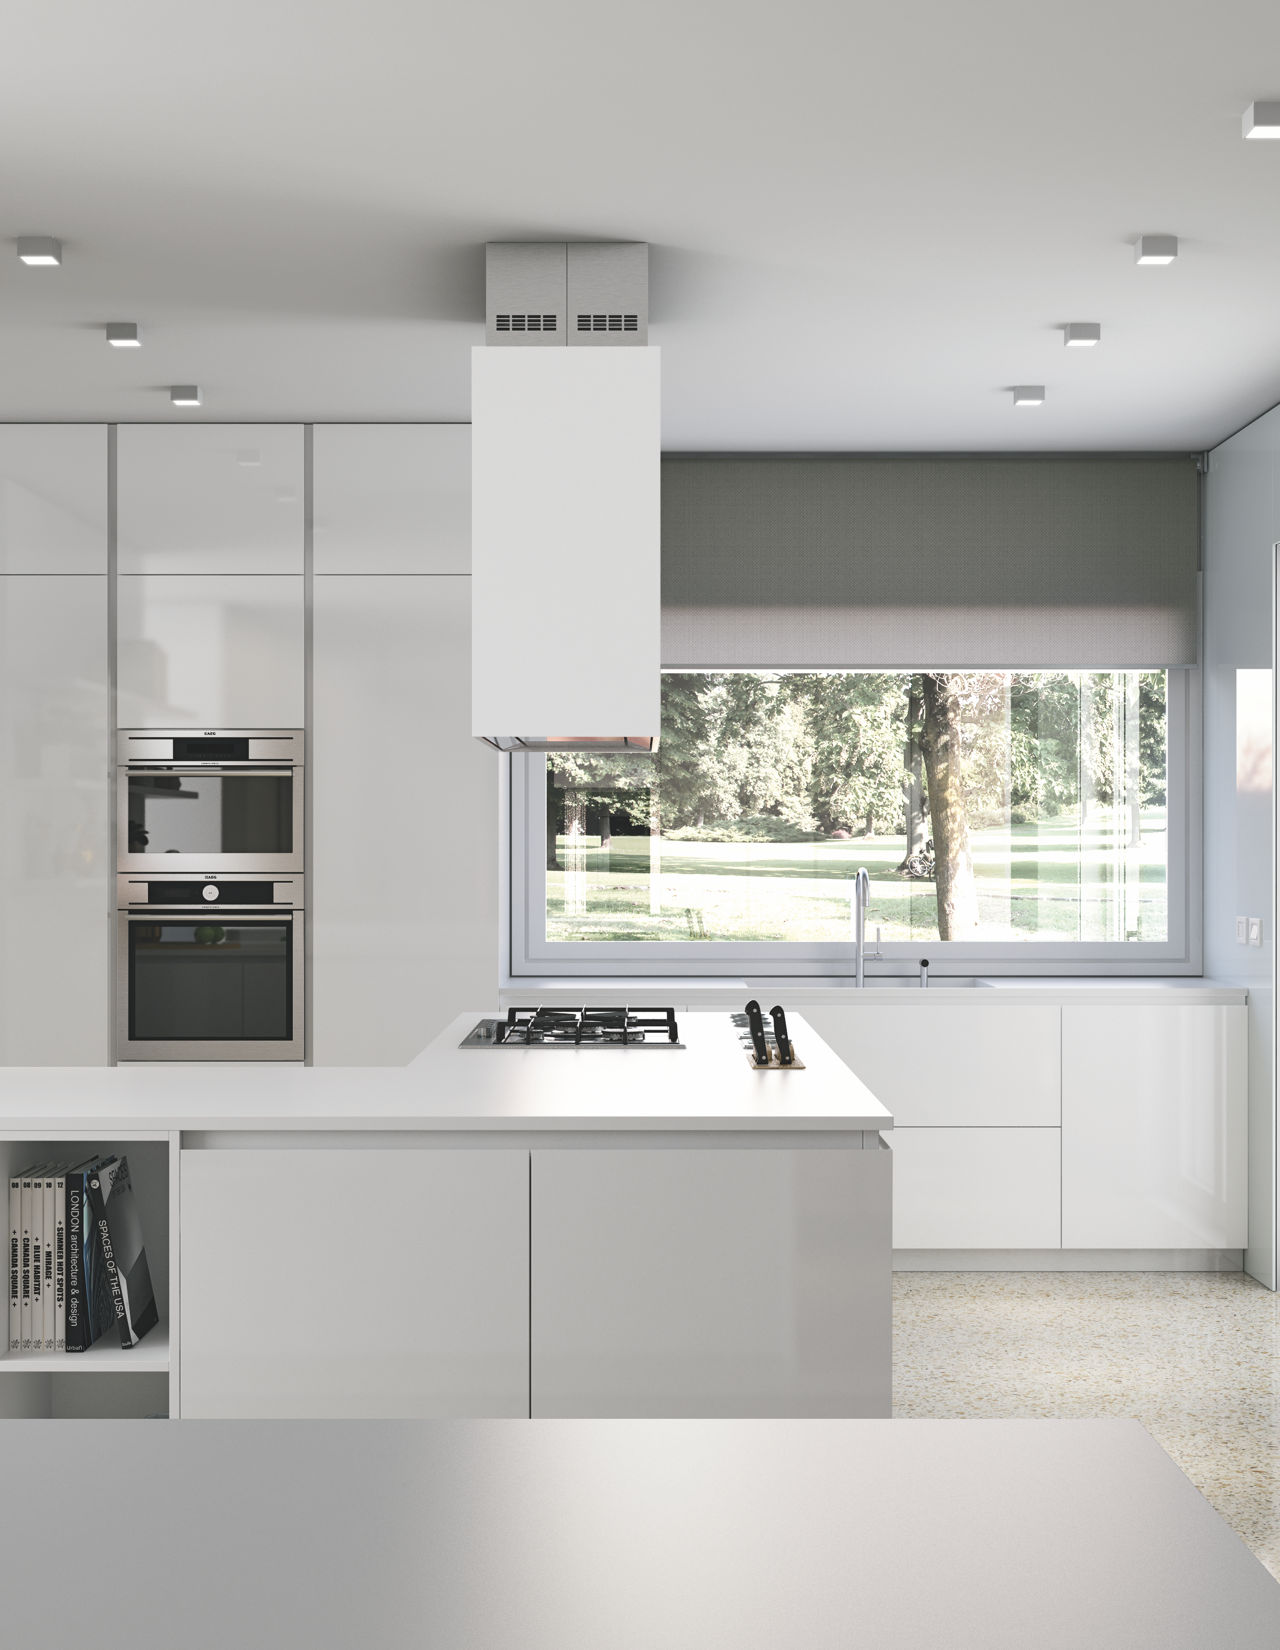 Cucine in laminati fenix battaglia projects milano for Teti arredamenti